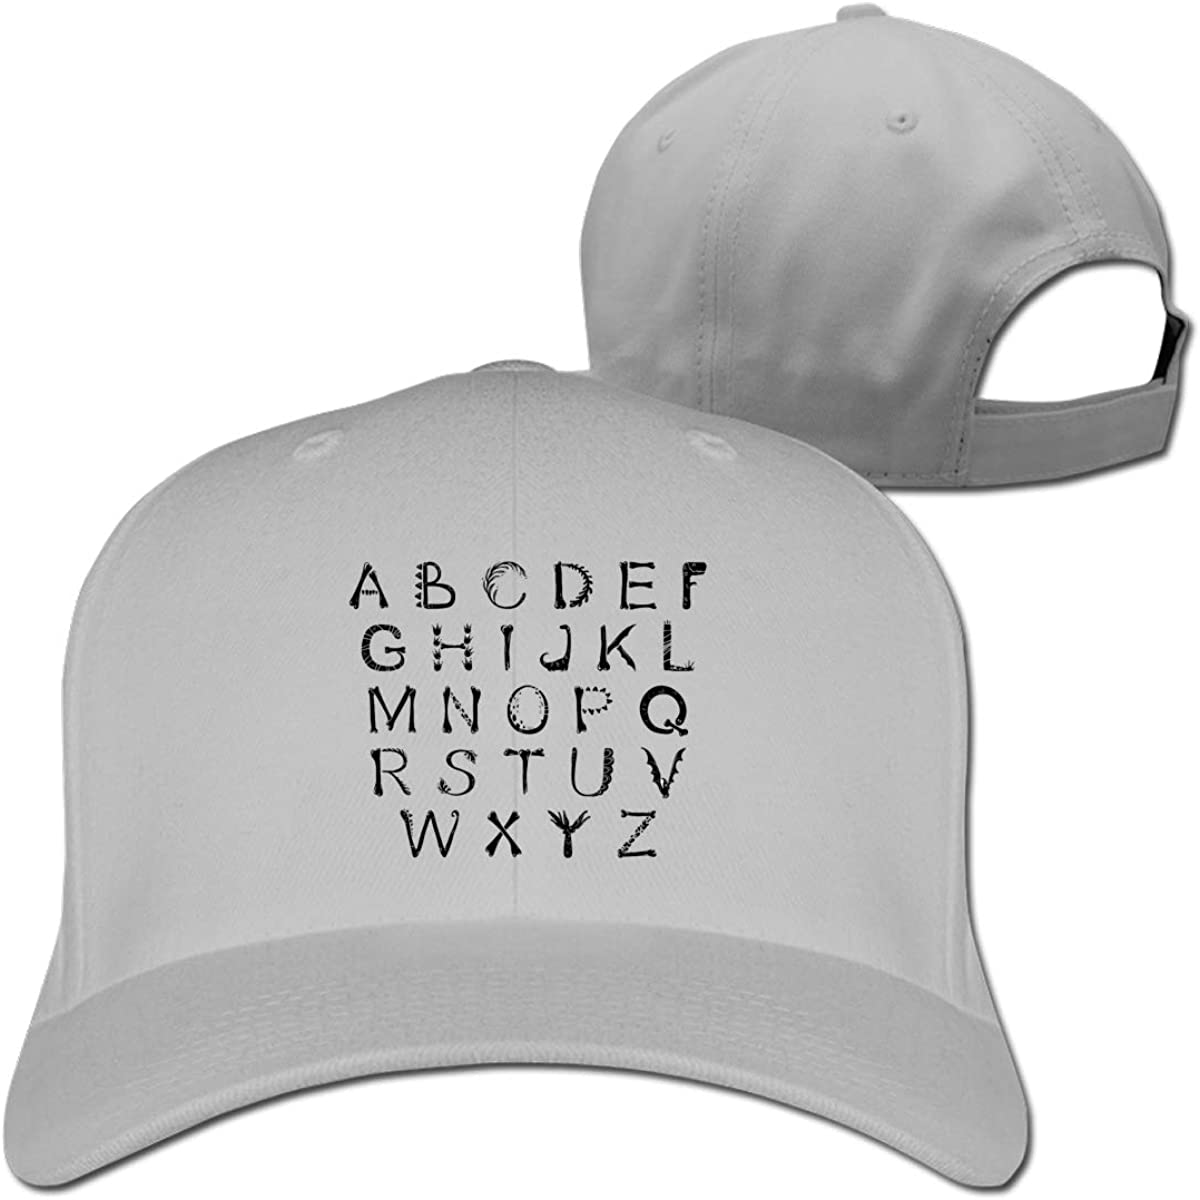 ABC Puzzle Classic Adjustable Cotton Baseball Caps Trucker Driver Hat Outdoor Cap Fitted Hats Dad Hat Gray